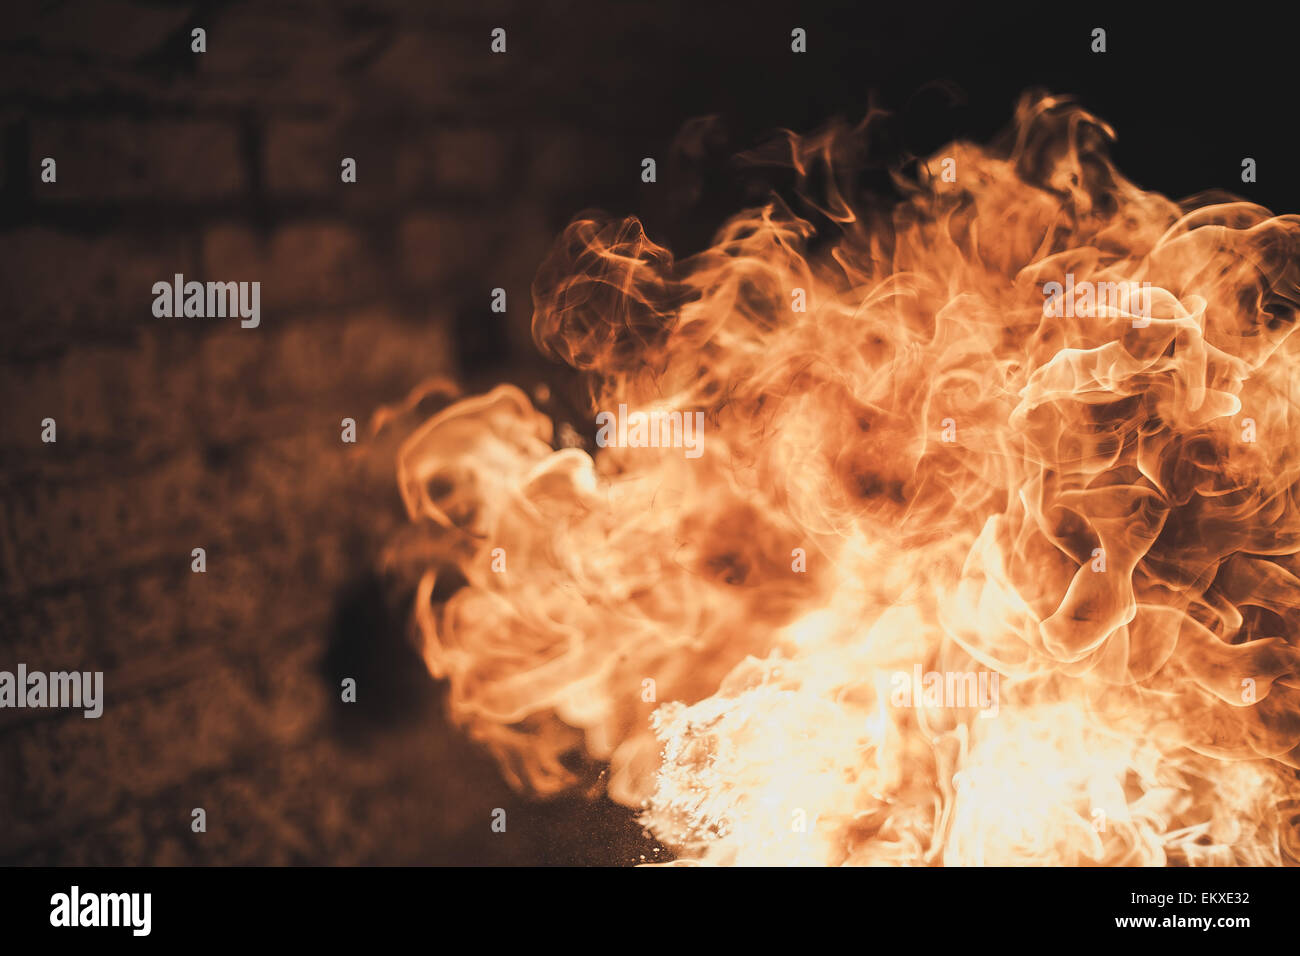 a fire ball backed by a brick background - Stock Image